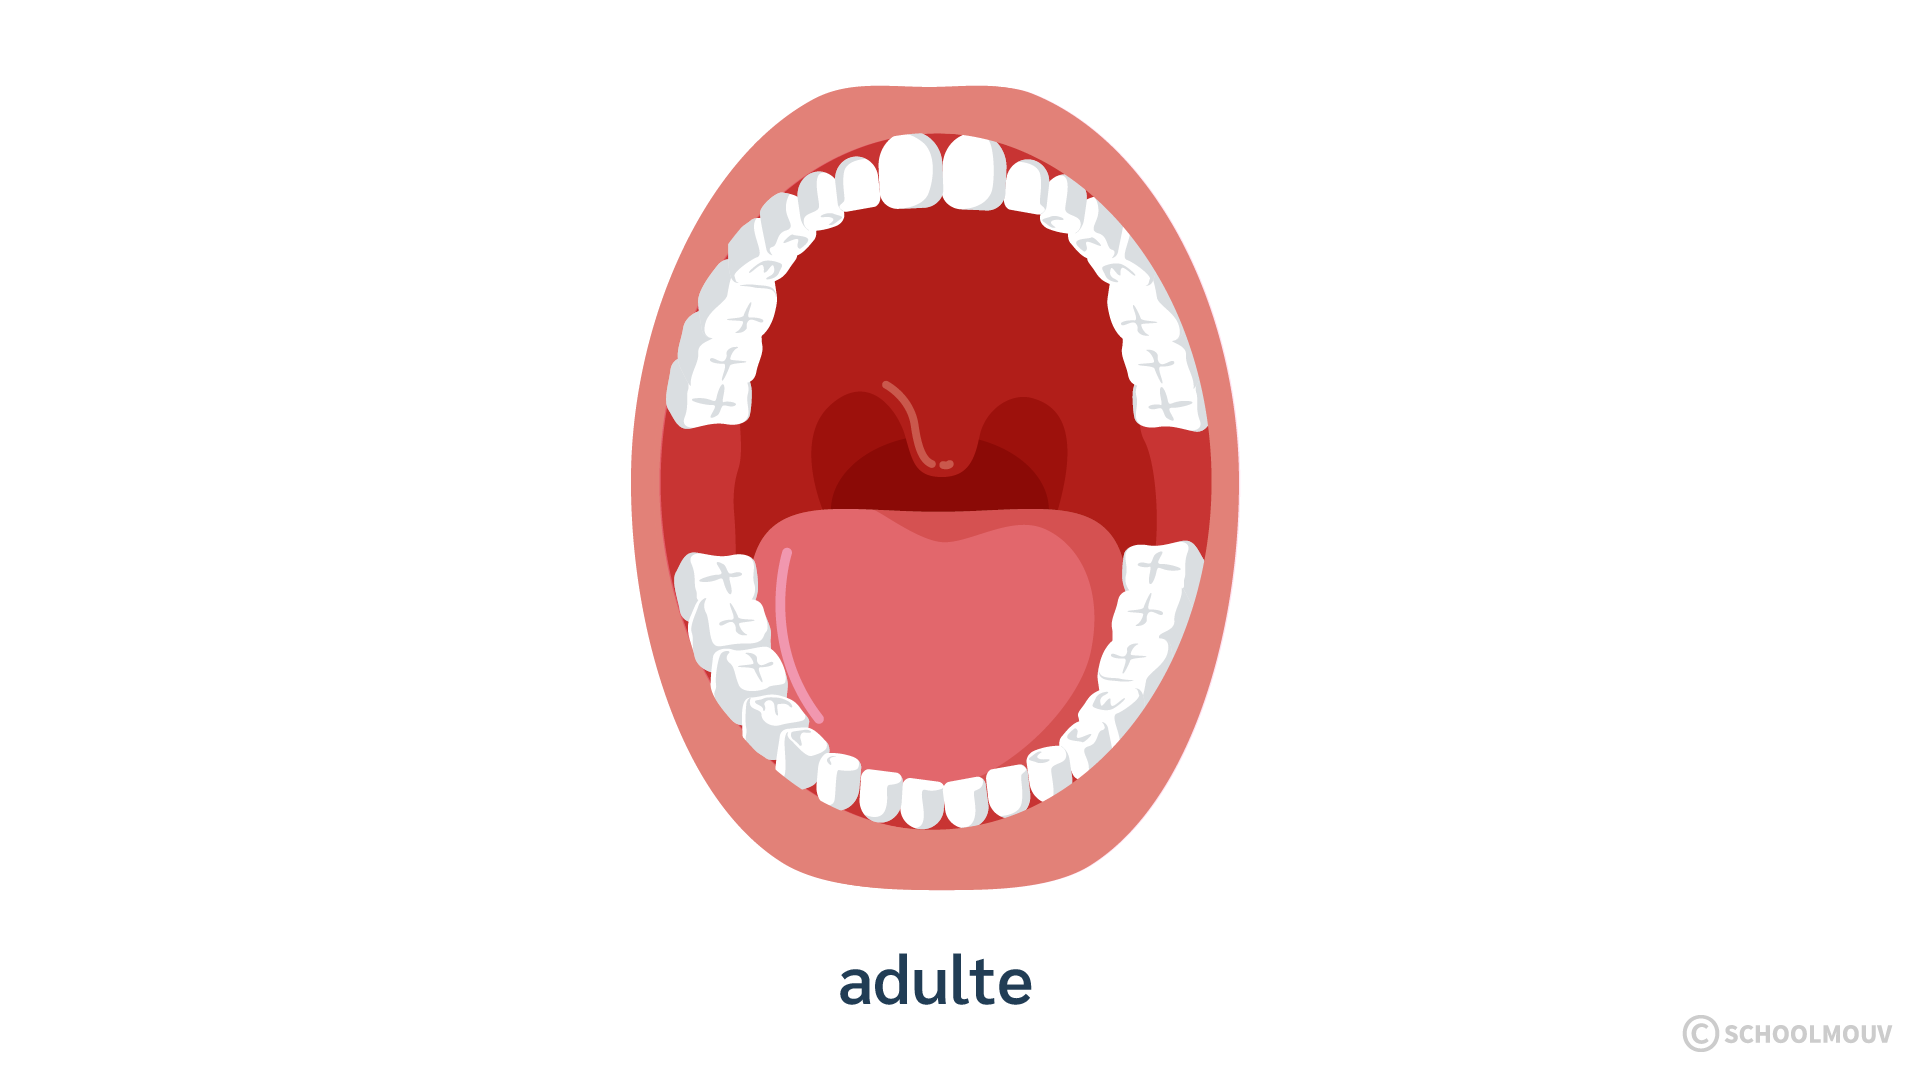 Bouche ouverte - Dents - Adulte - Dentition - Position des dents - SchoolMouv - Sciences - CE1